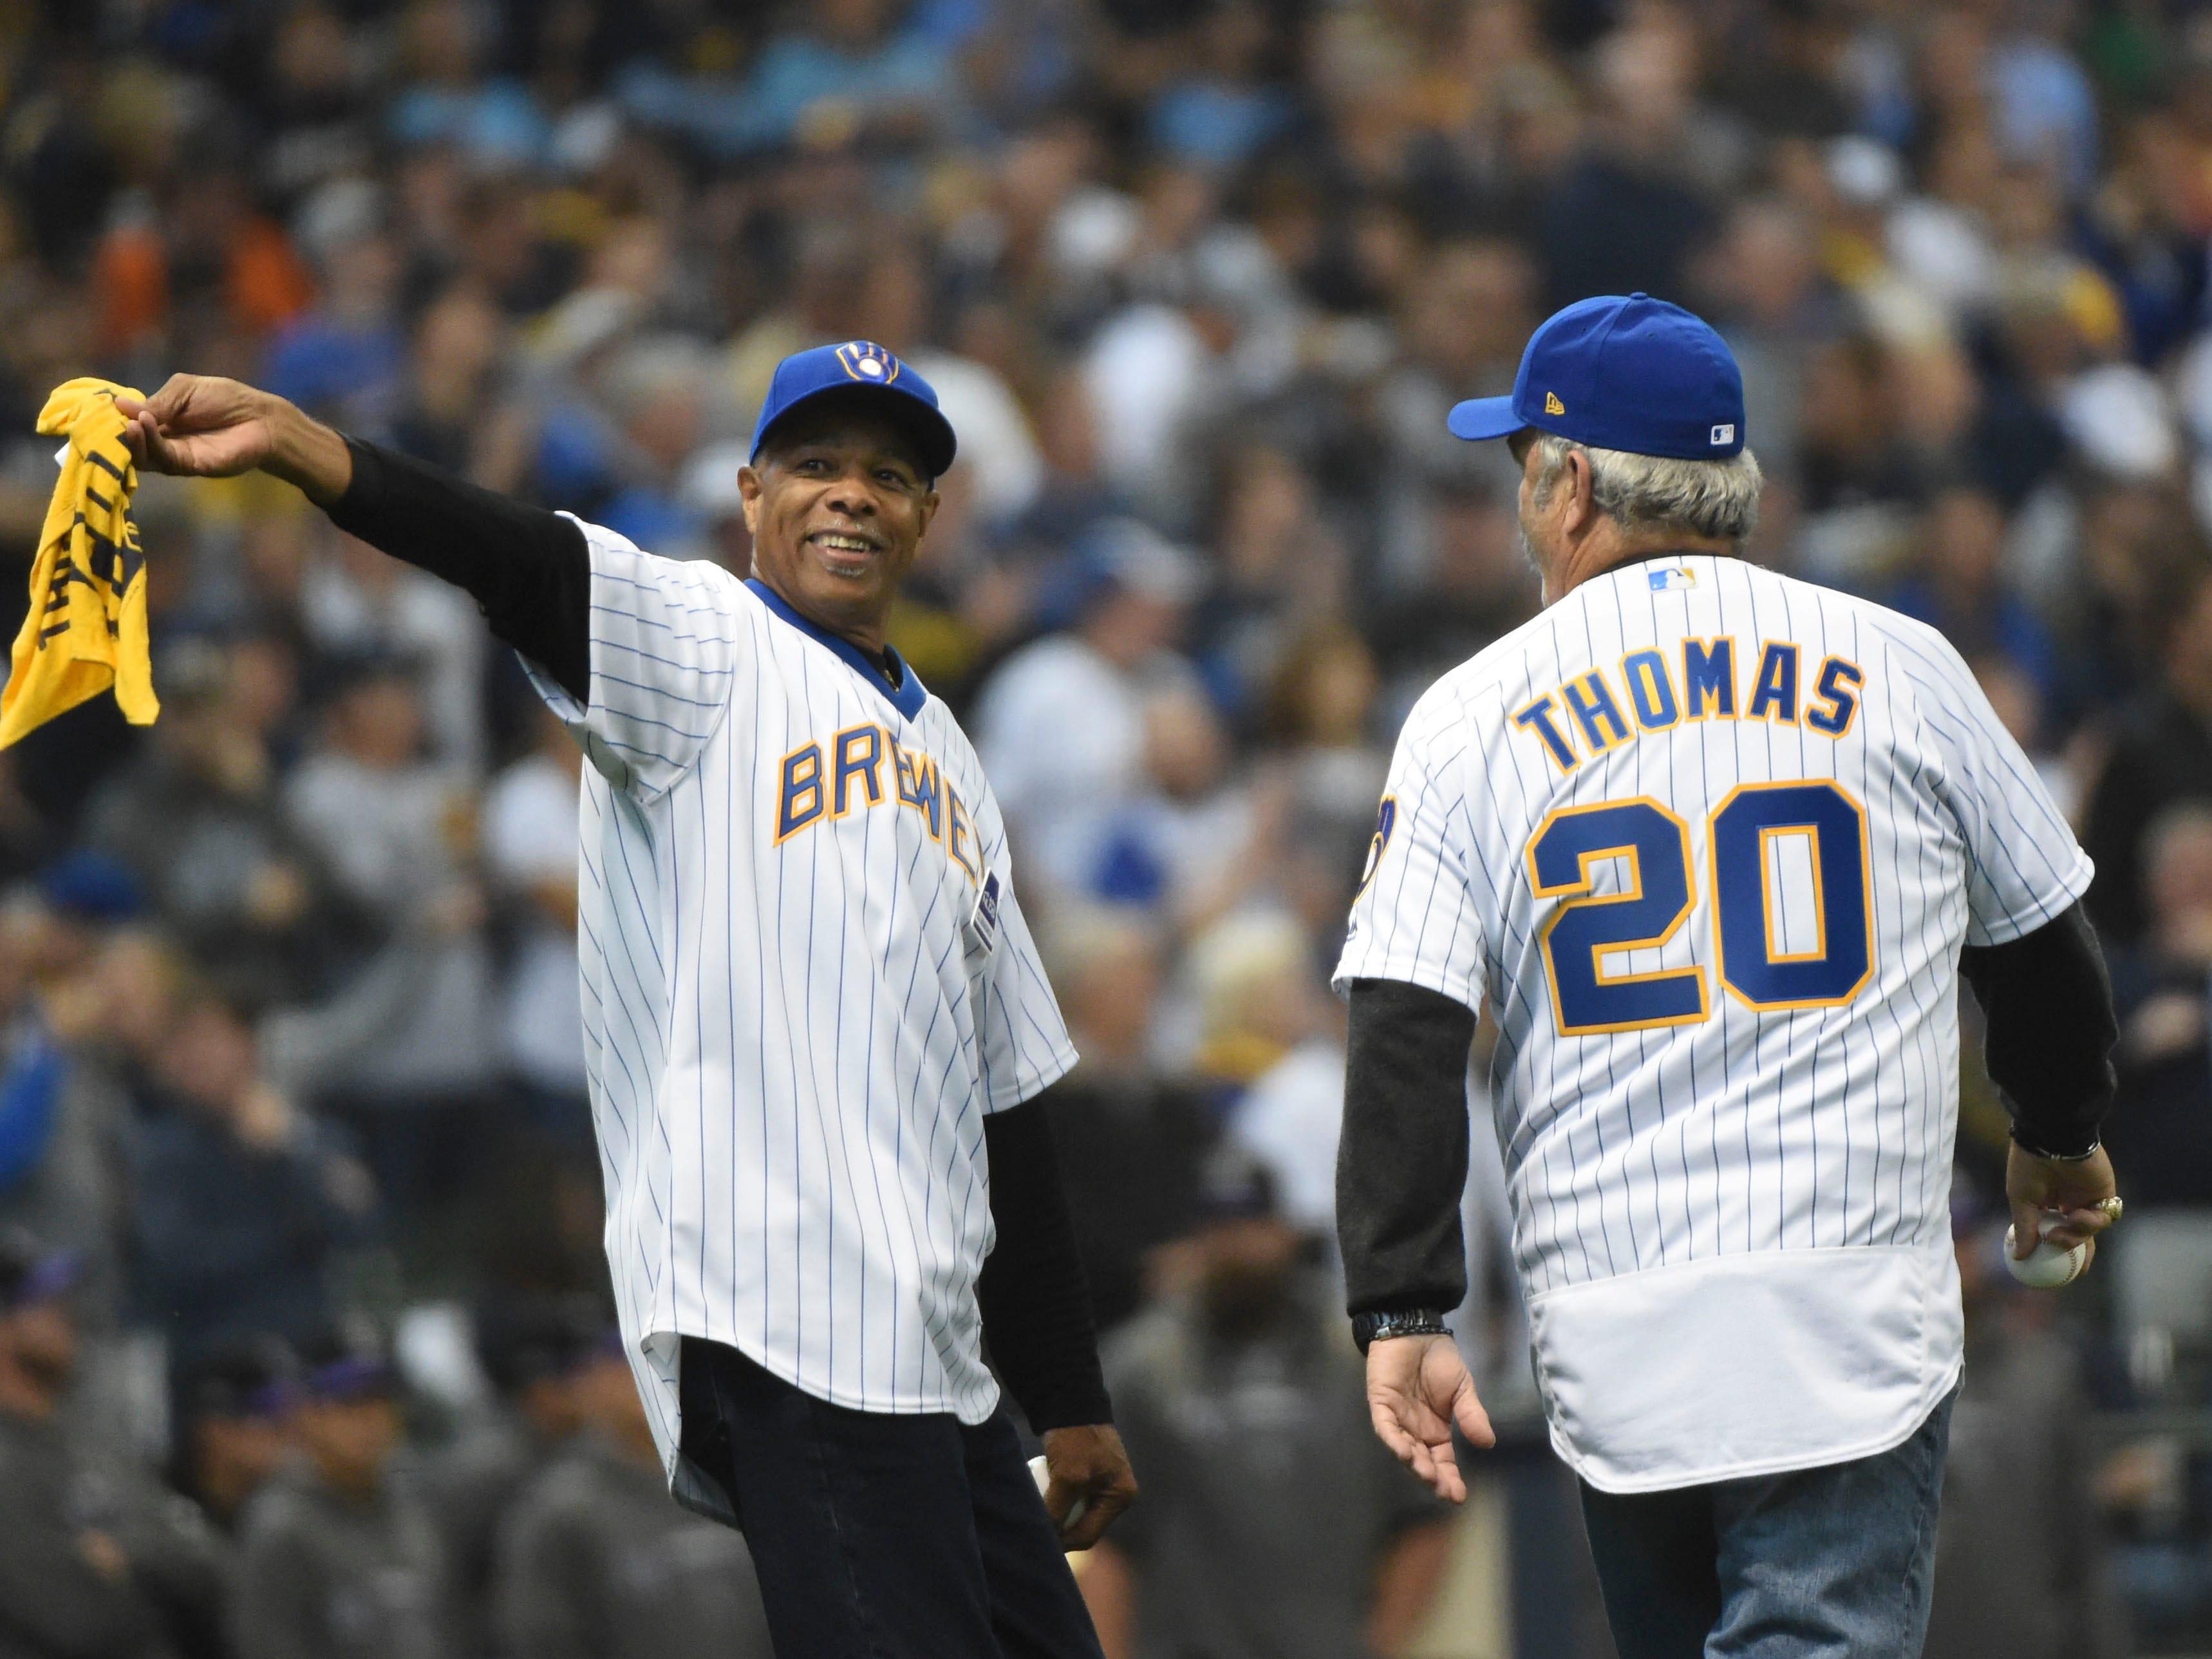 NLDS Game 2: Former Brewers players Cecil Cooper (left) and Gorman Thomas throw out the ceremonial first pitch.